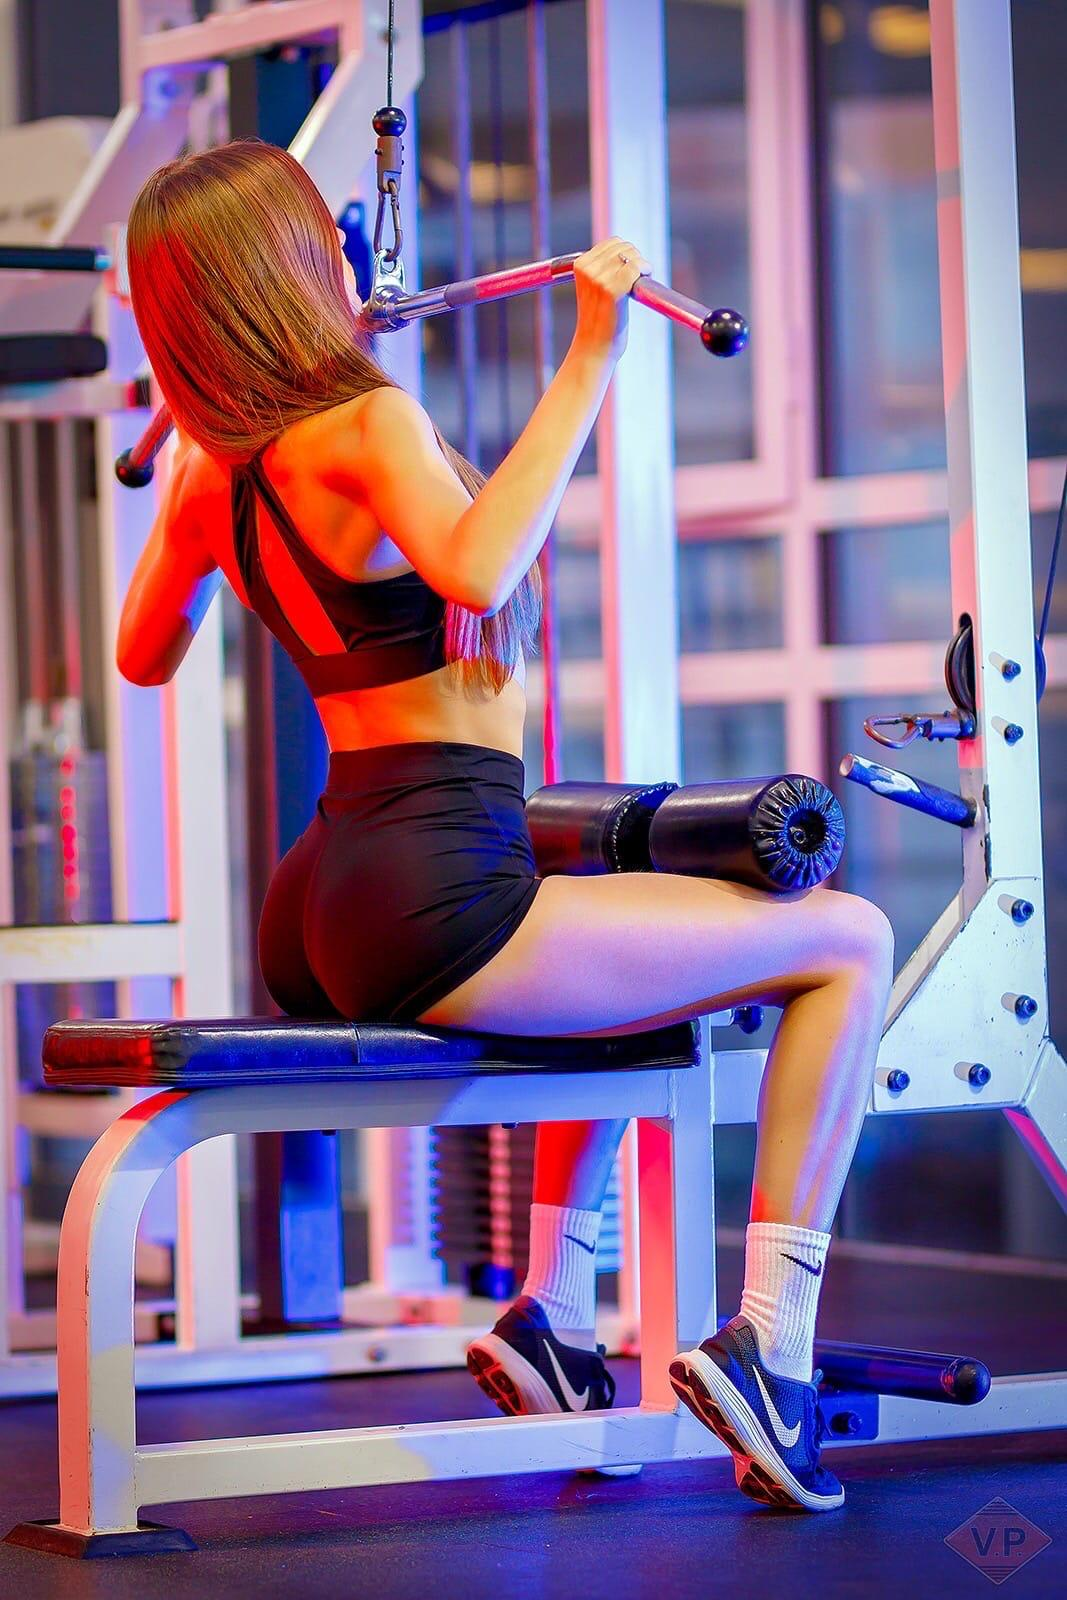 Picture with tags: HD, Training, Interesting, Sport, Fitness, Girl